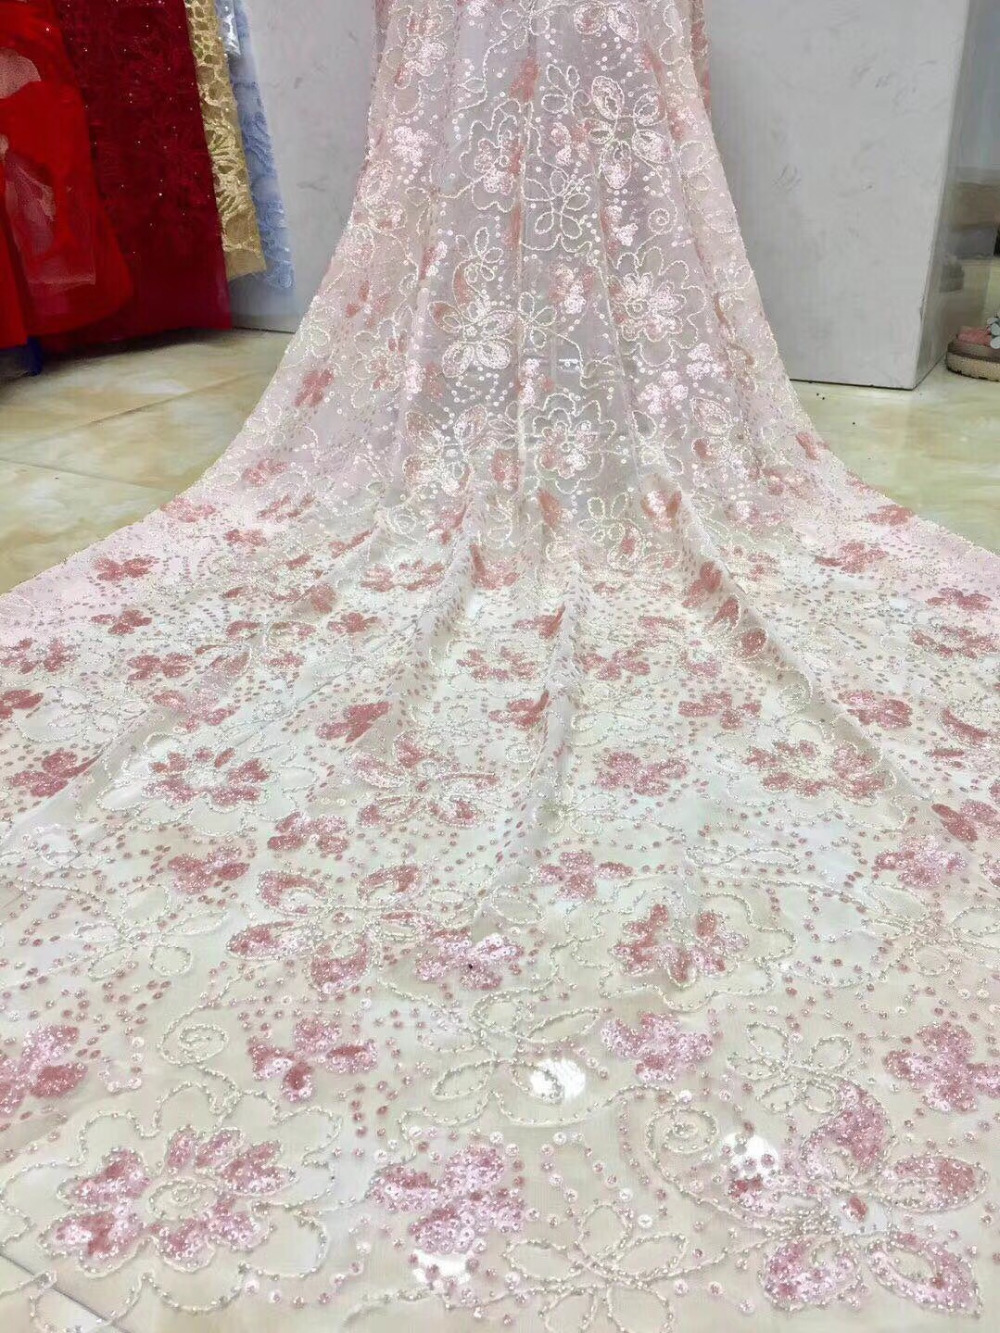 French Net Lace Fabric 2018 Latest African Lace Fabric With Embroidery Mesh Tulle Lace Fabric High quality Nigerian LaceFrench Net Lace Fabric 2018 Latest African Lace Fabric With Embroidery Mesh Tulle Lace Fabric High quality Nigerian Lace